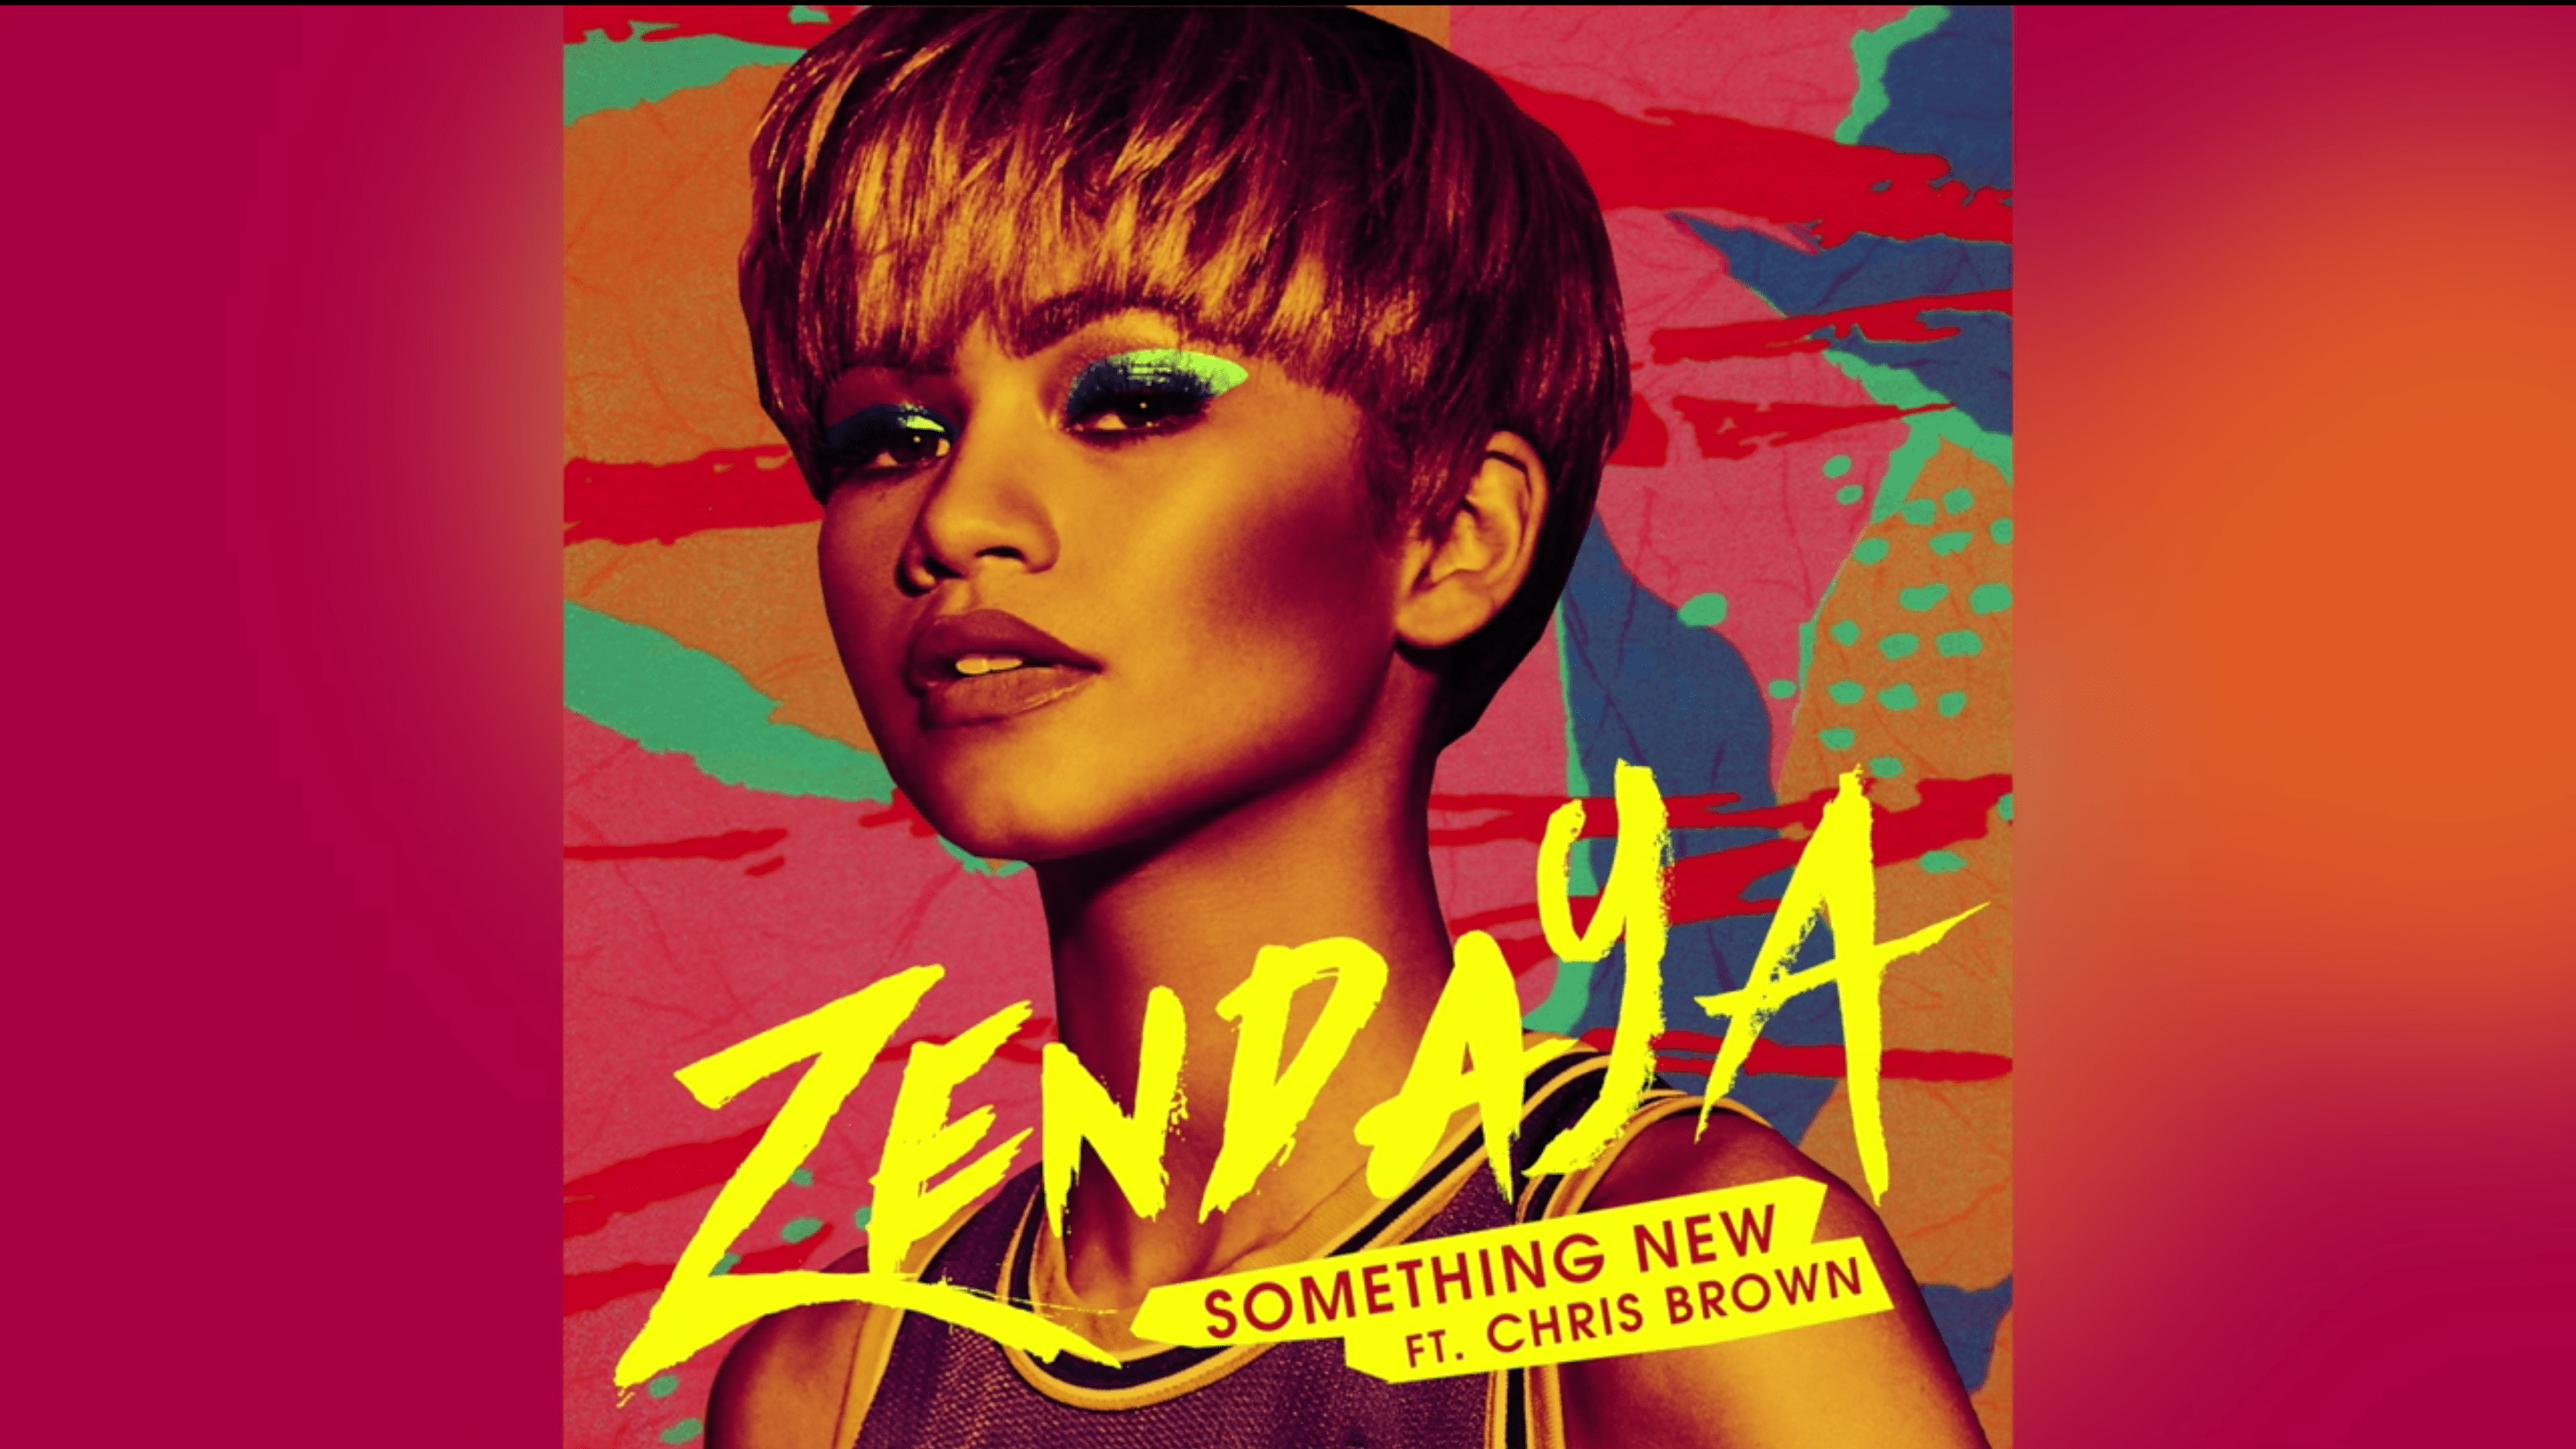 แปลเพลง Something New - Zendaya feat. Chris Brown